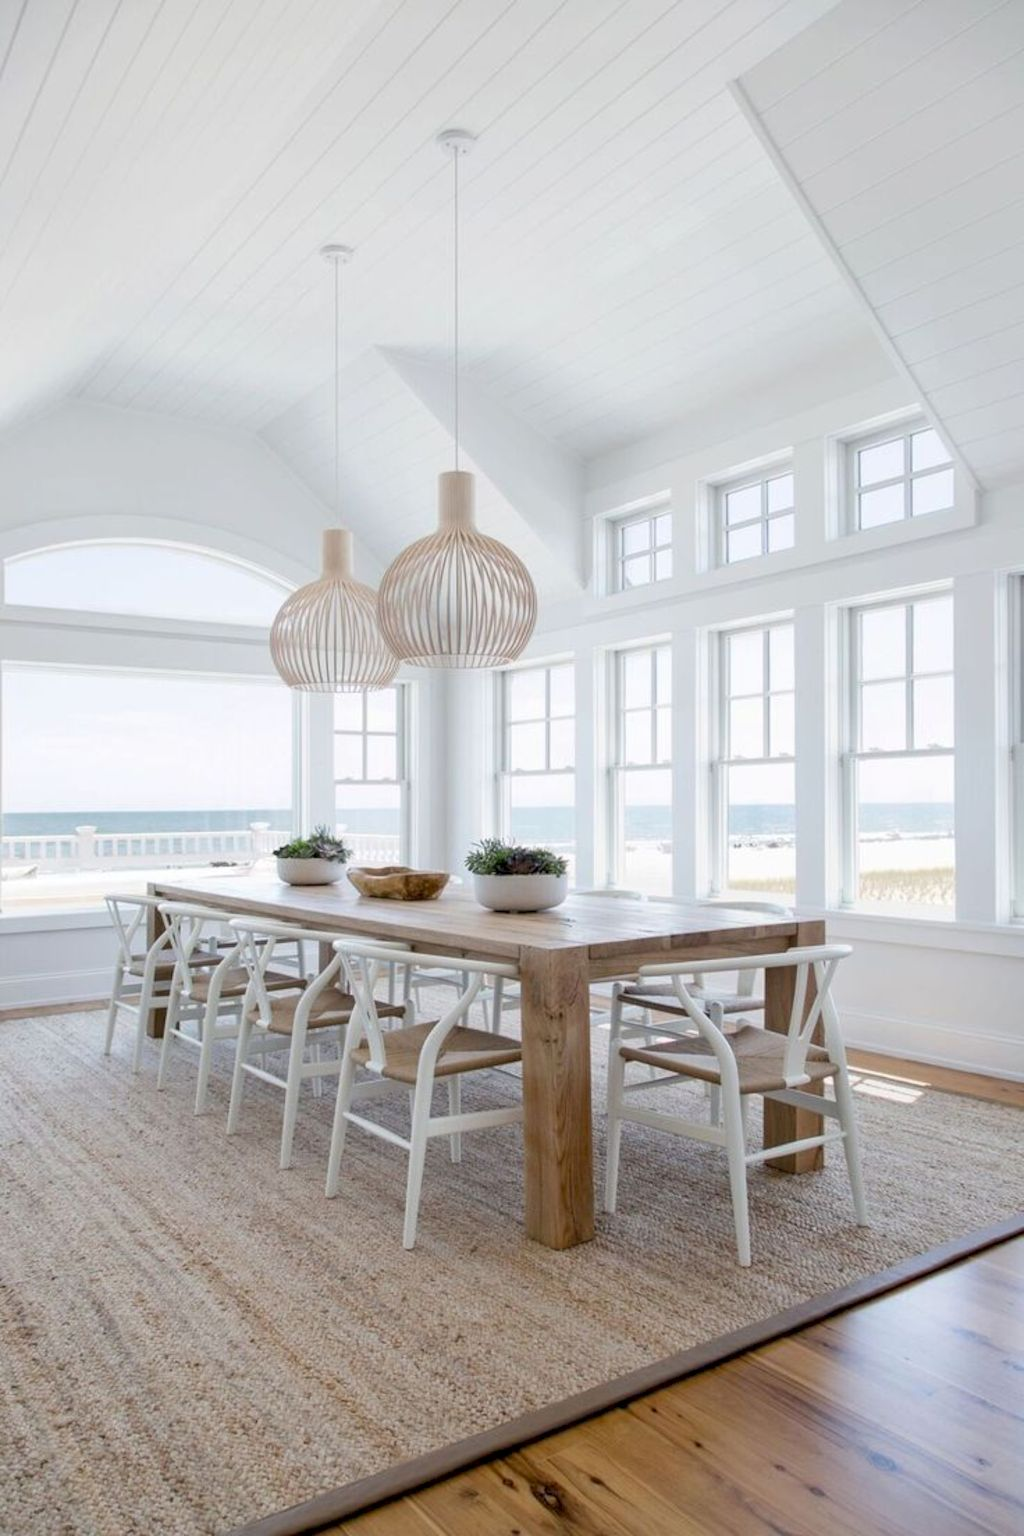 Beach home dining room style giving a fresh vibe among inviting recreational interior update Image 10